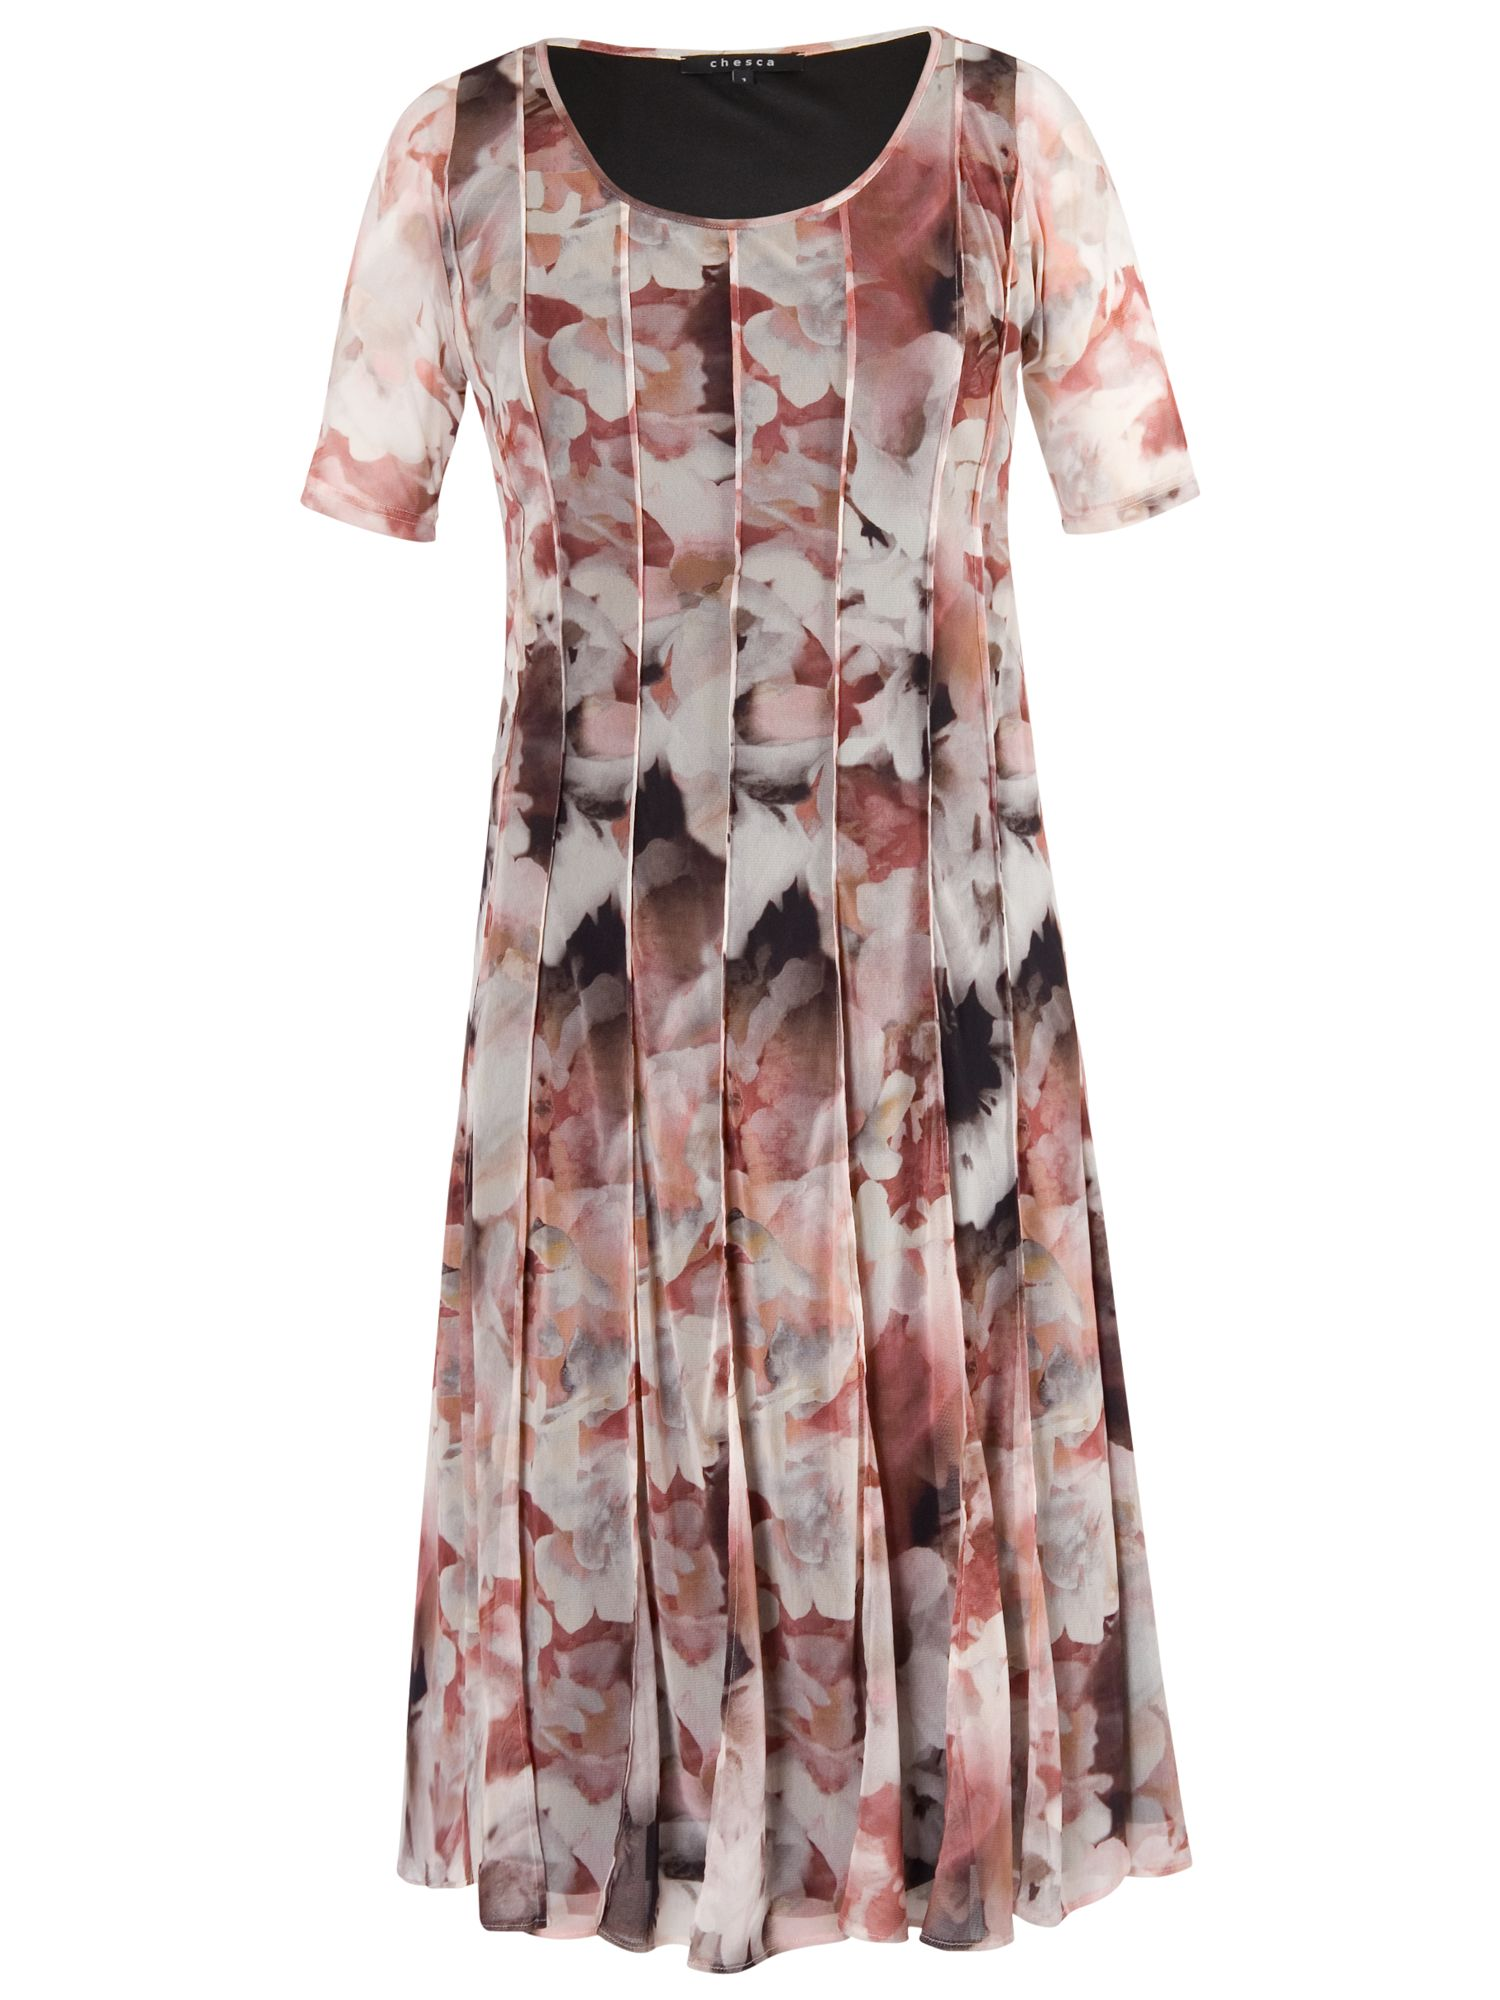 Chesca Chesca Floral Mesh Dress, Powder Pink